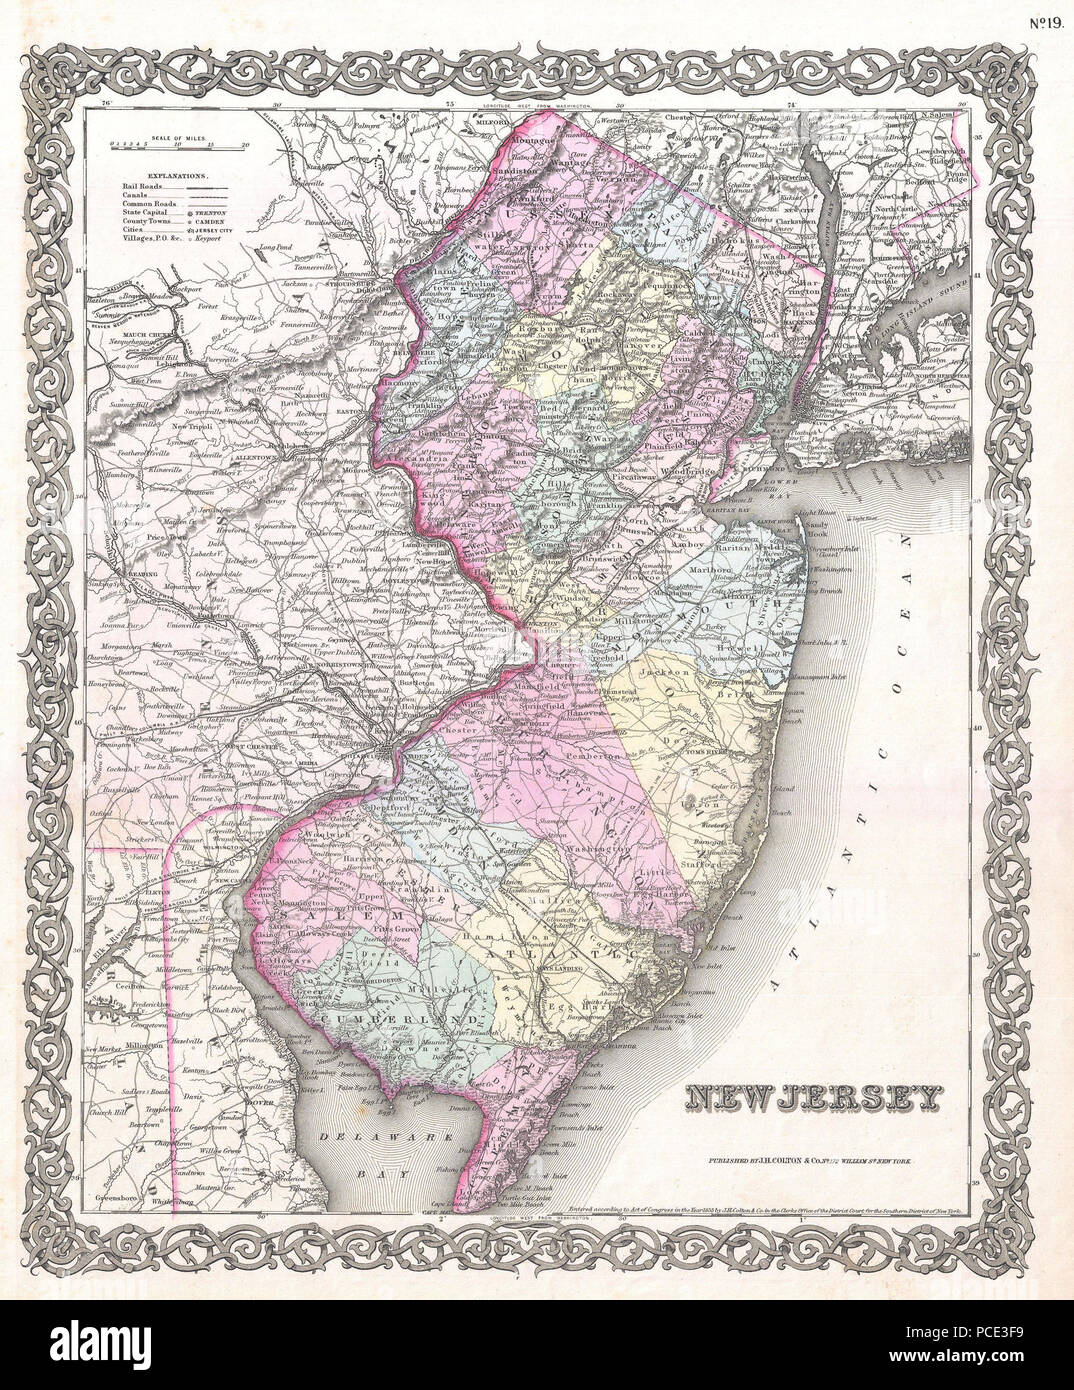 8 1855 Colton Map of New Jersey - Geographicus - NewJersey-colton-1855 - Stock Image